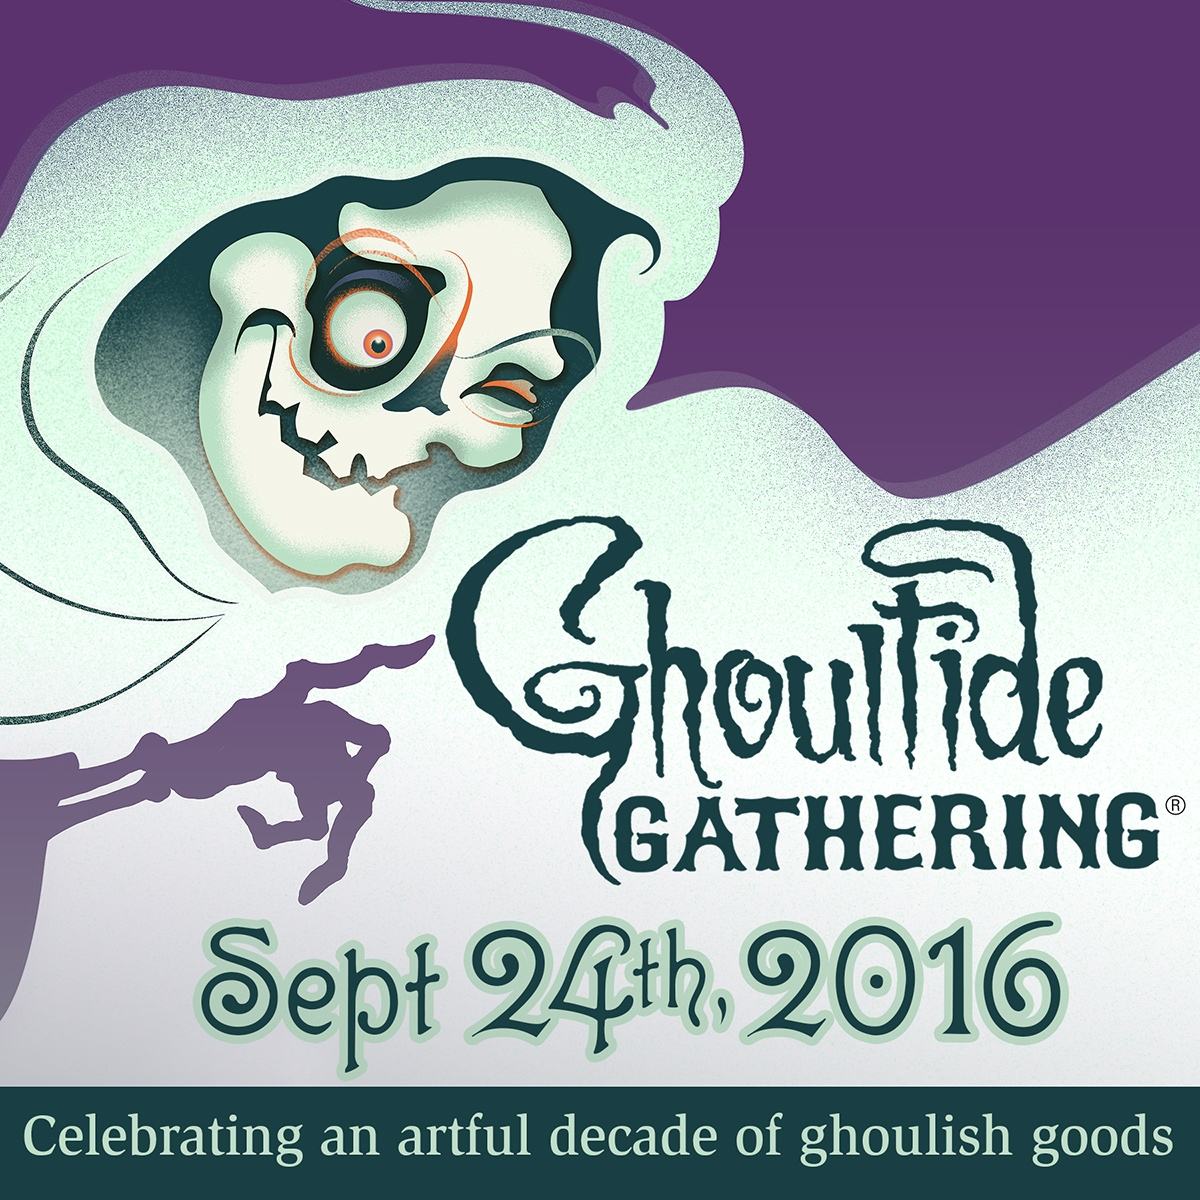 10th Annual Ghoultide Gathering